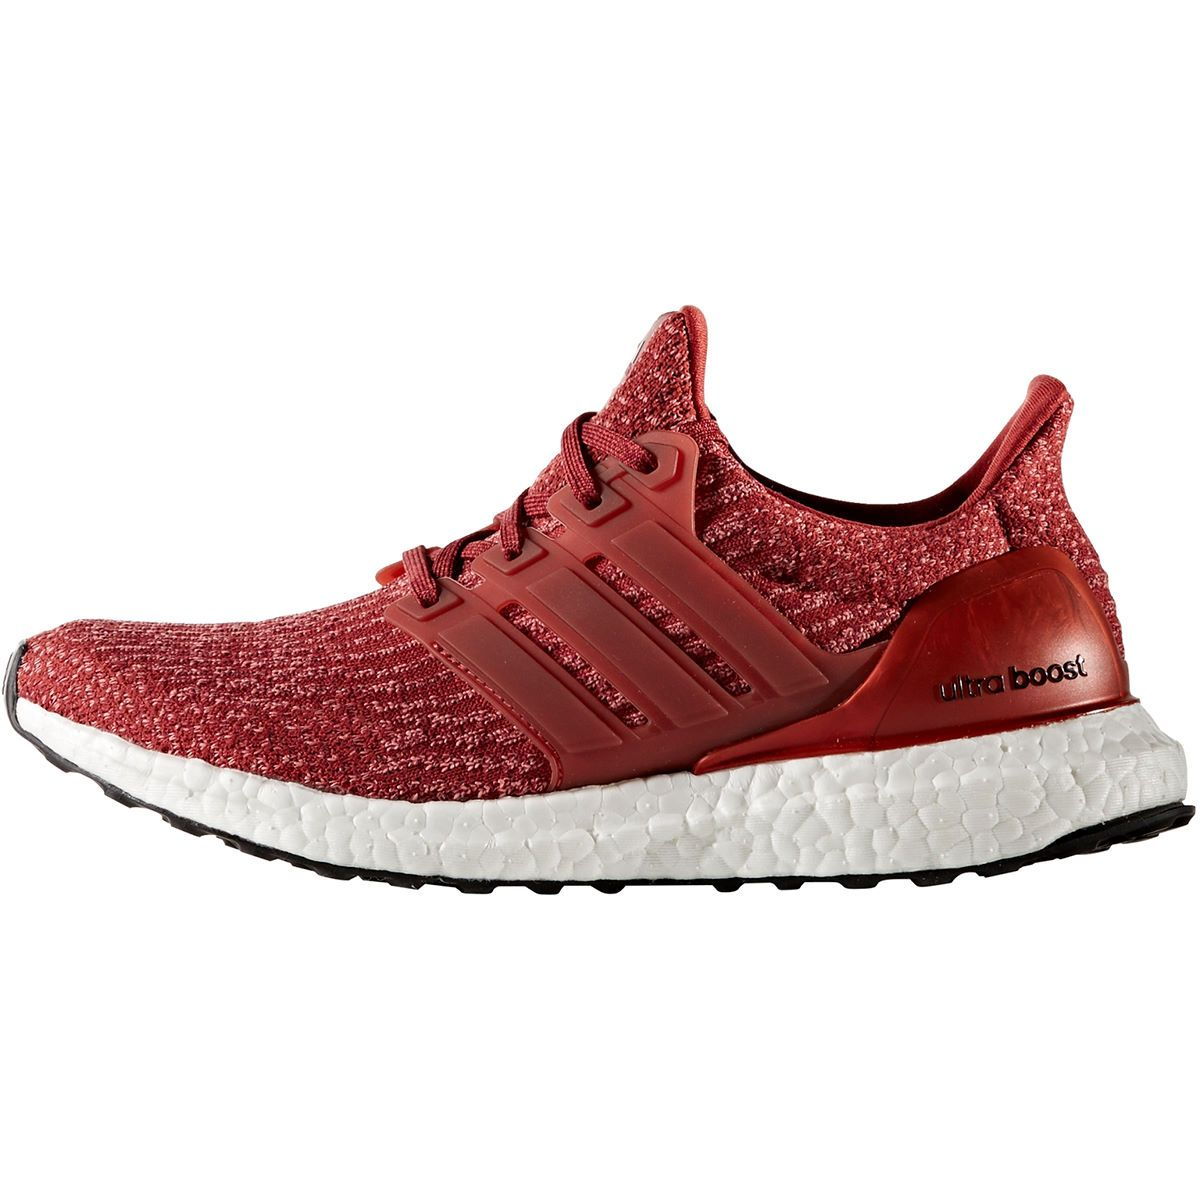 566d4d2b4 adidas shoes for women 2016 adidas ultra boost women burgundy black ...